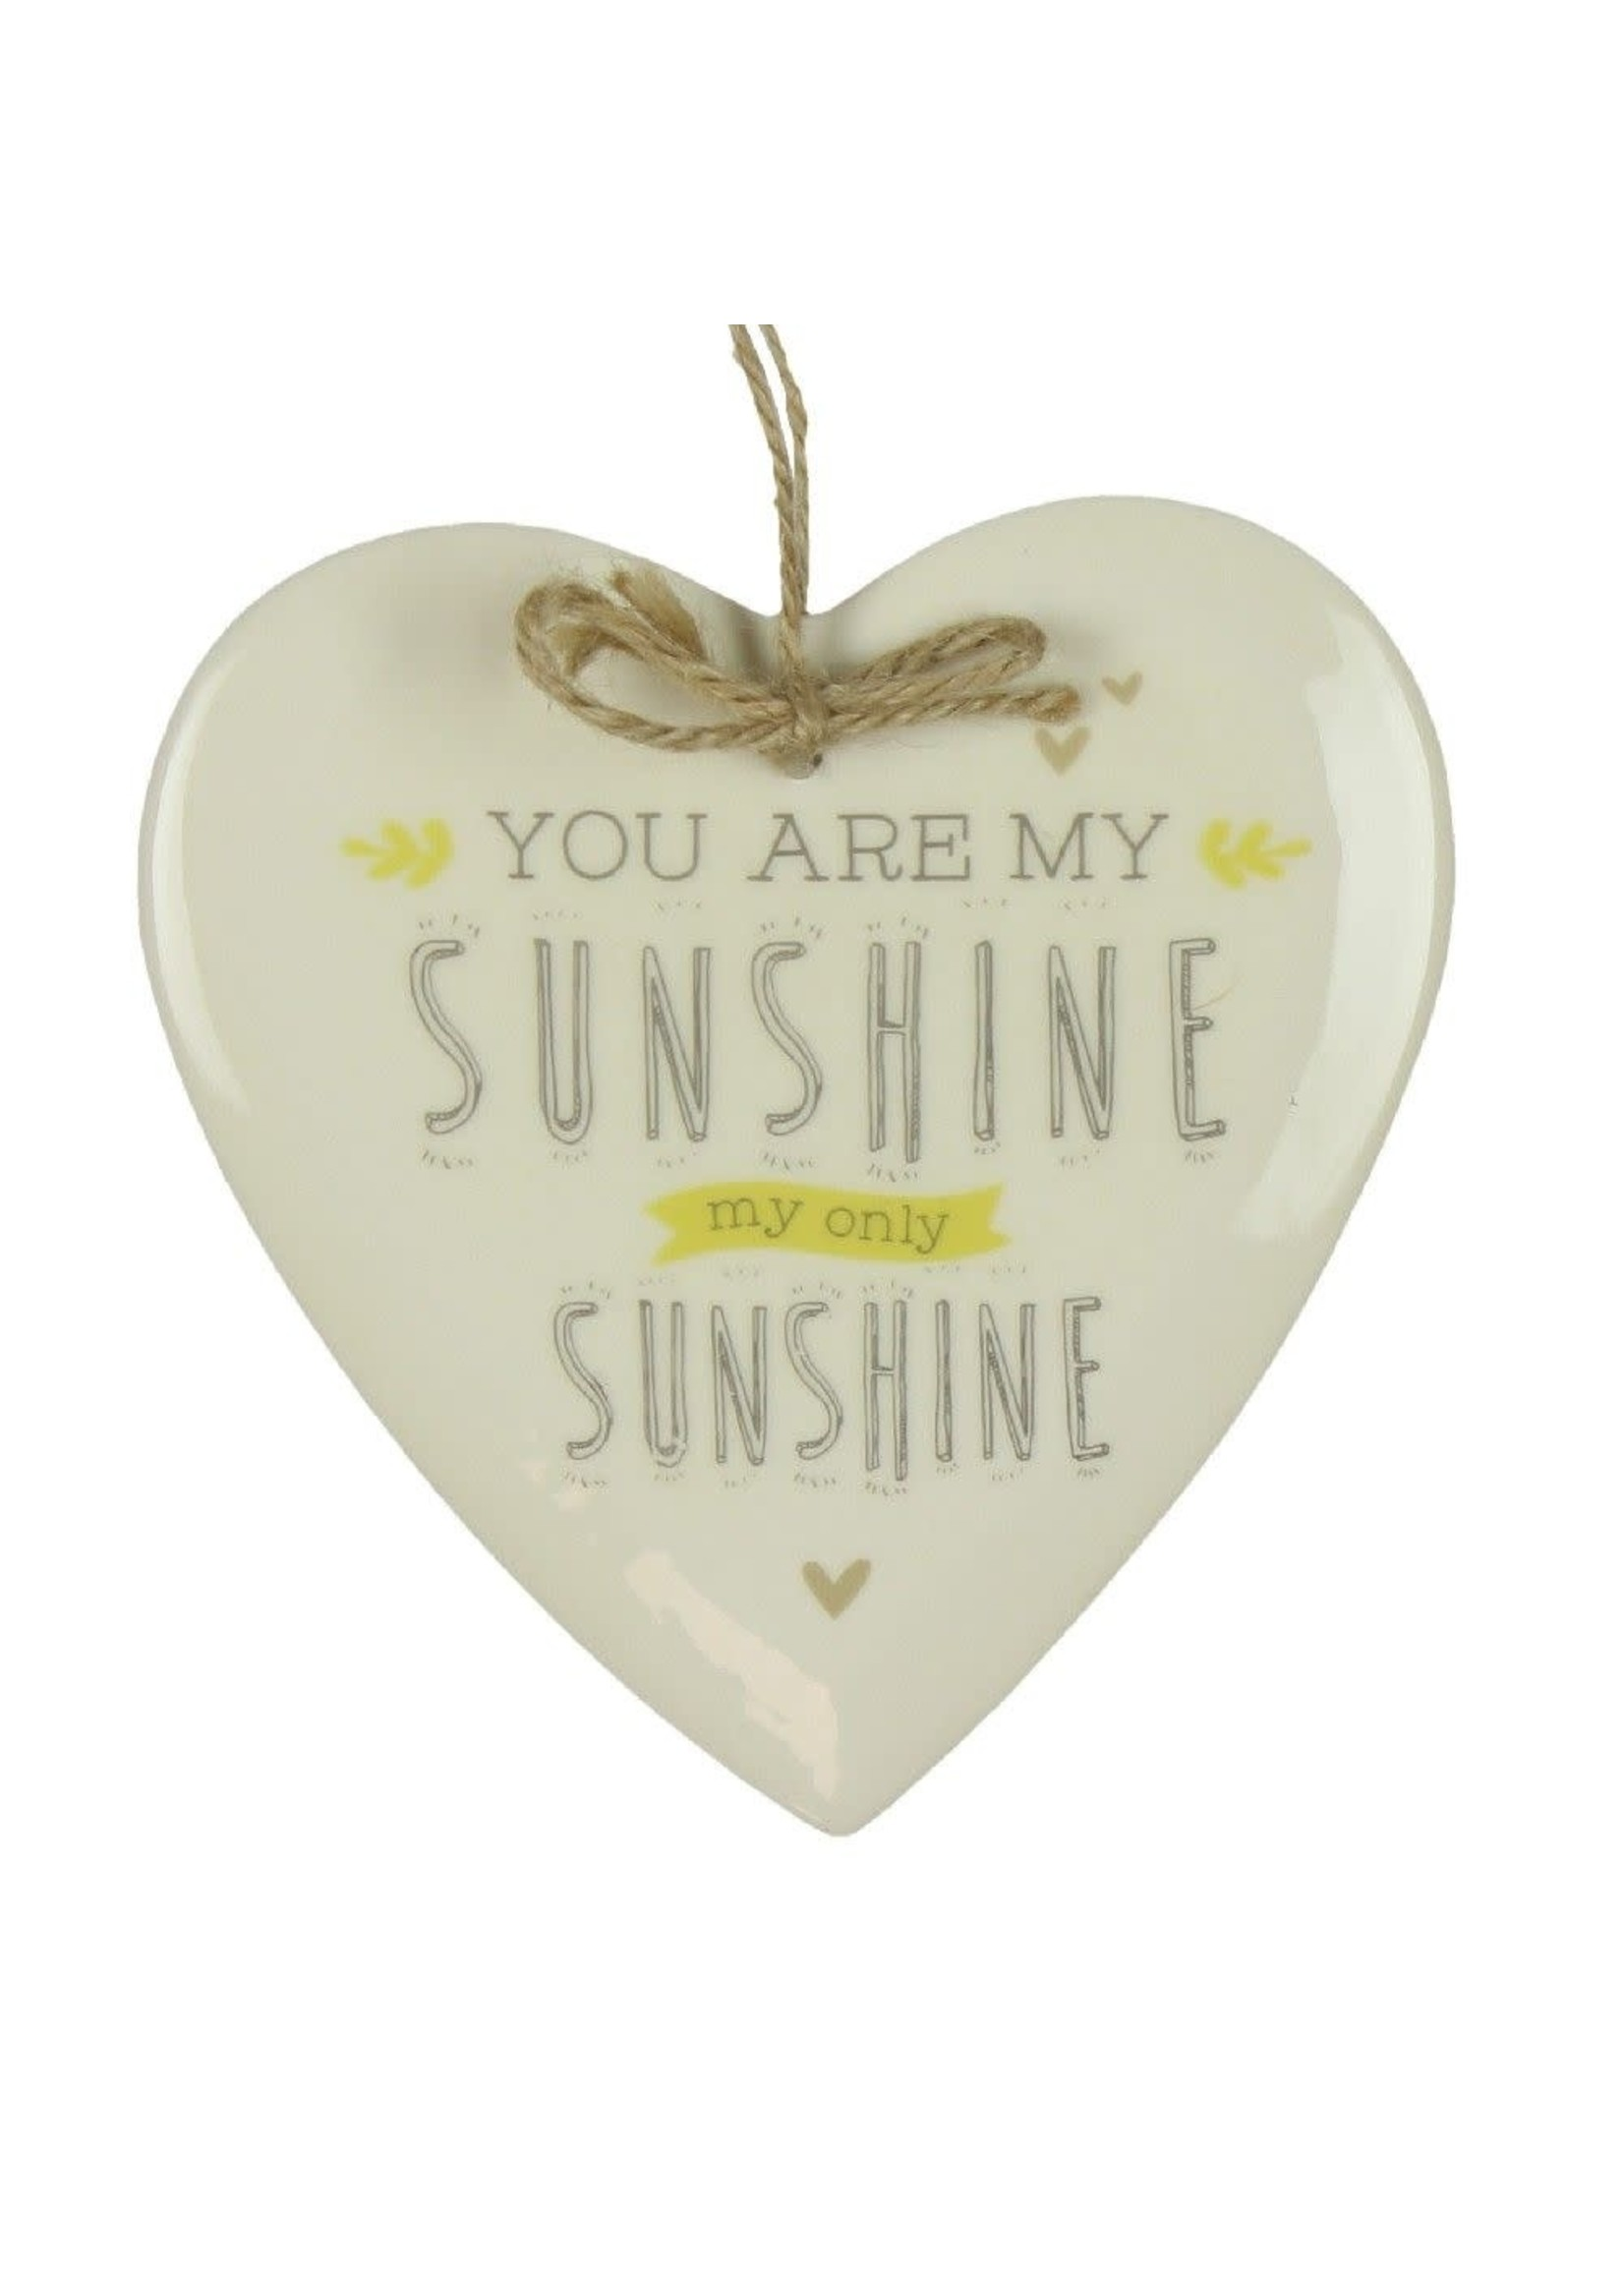 LOVE LIFE HEART PLAQUE - YOU ARE MY SUNSHINE